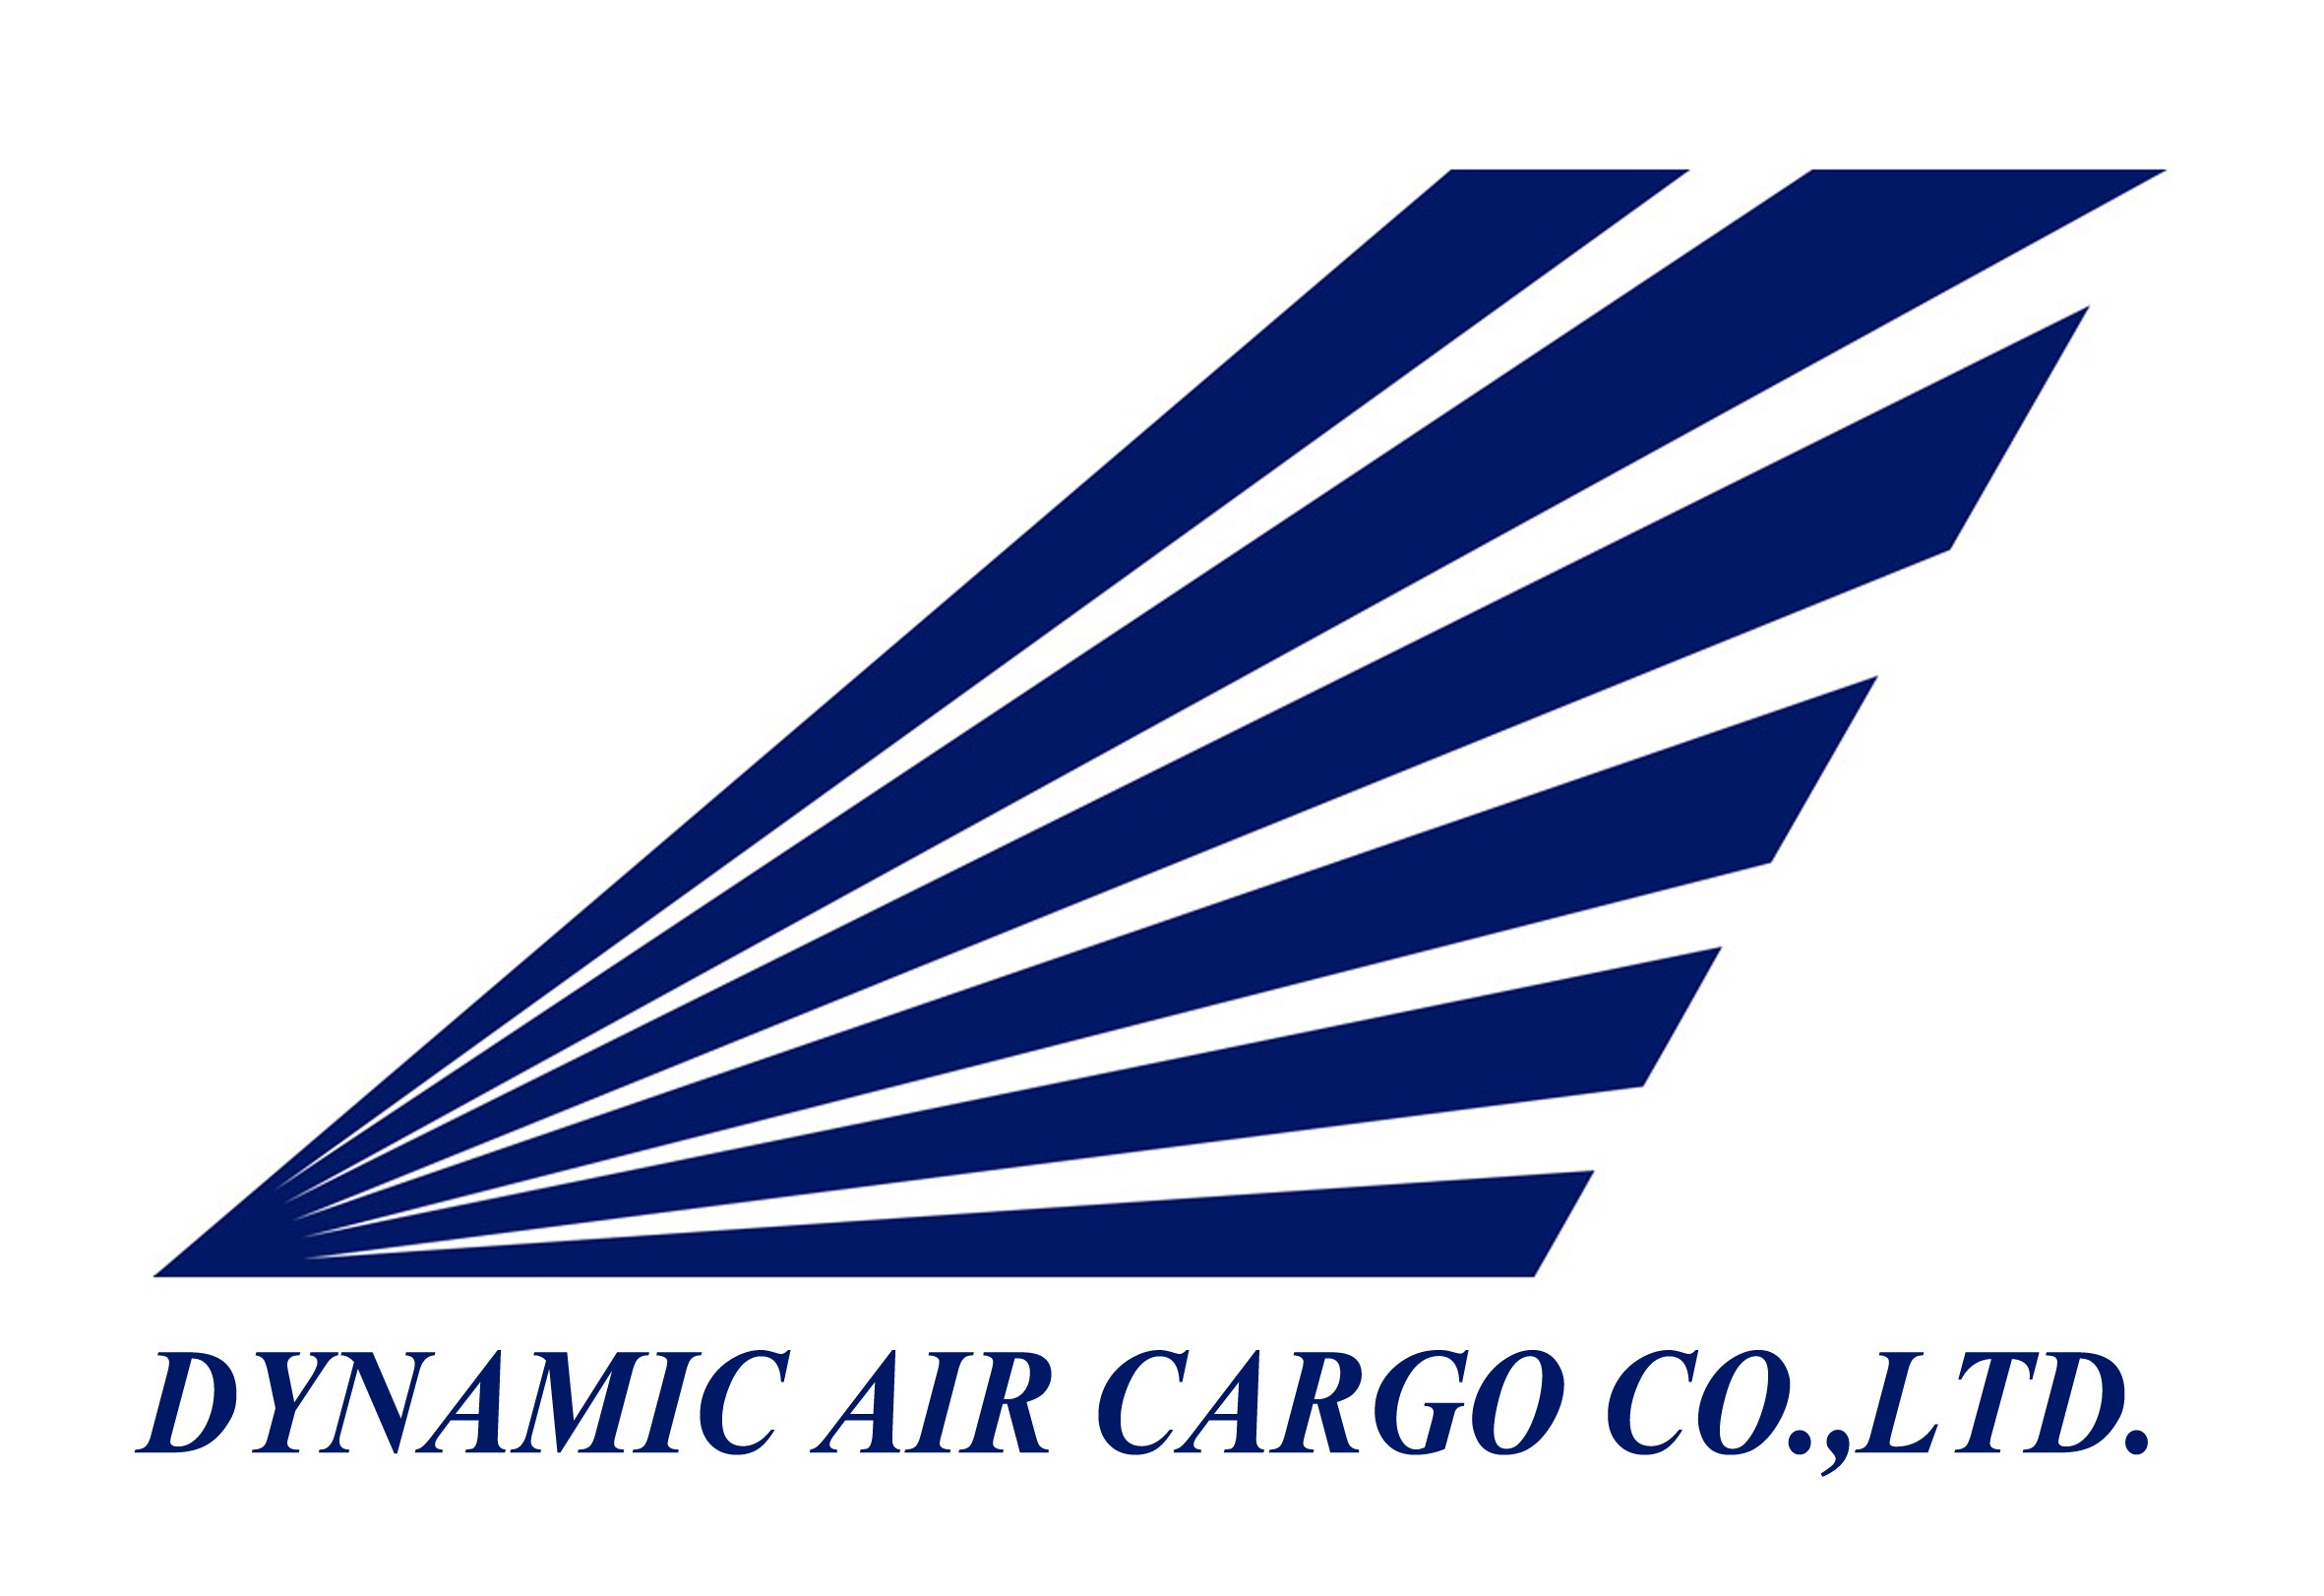 Dynamic Air Cargo Co., Ltd.